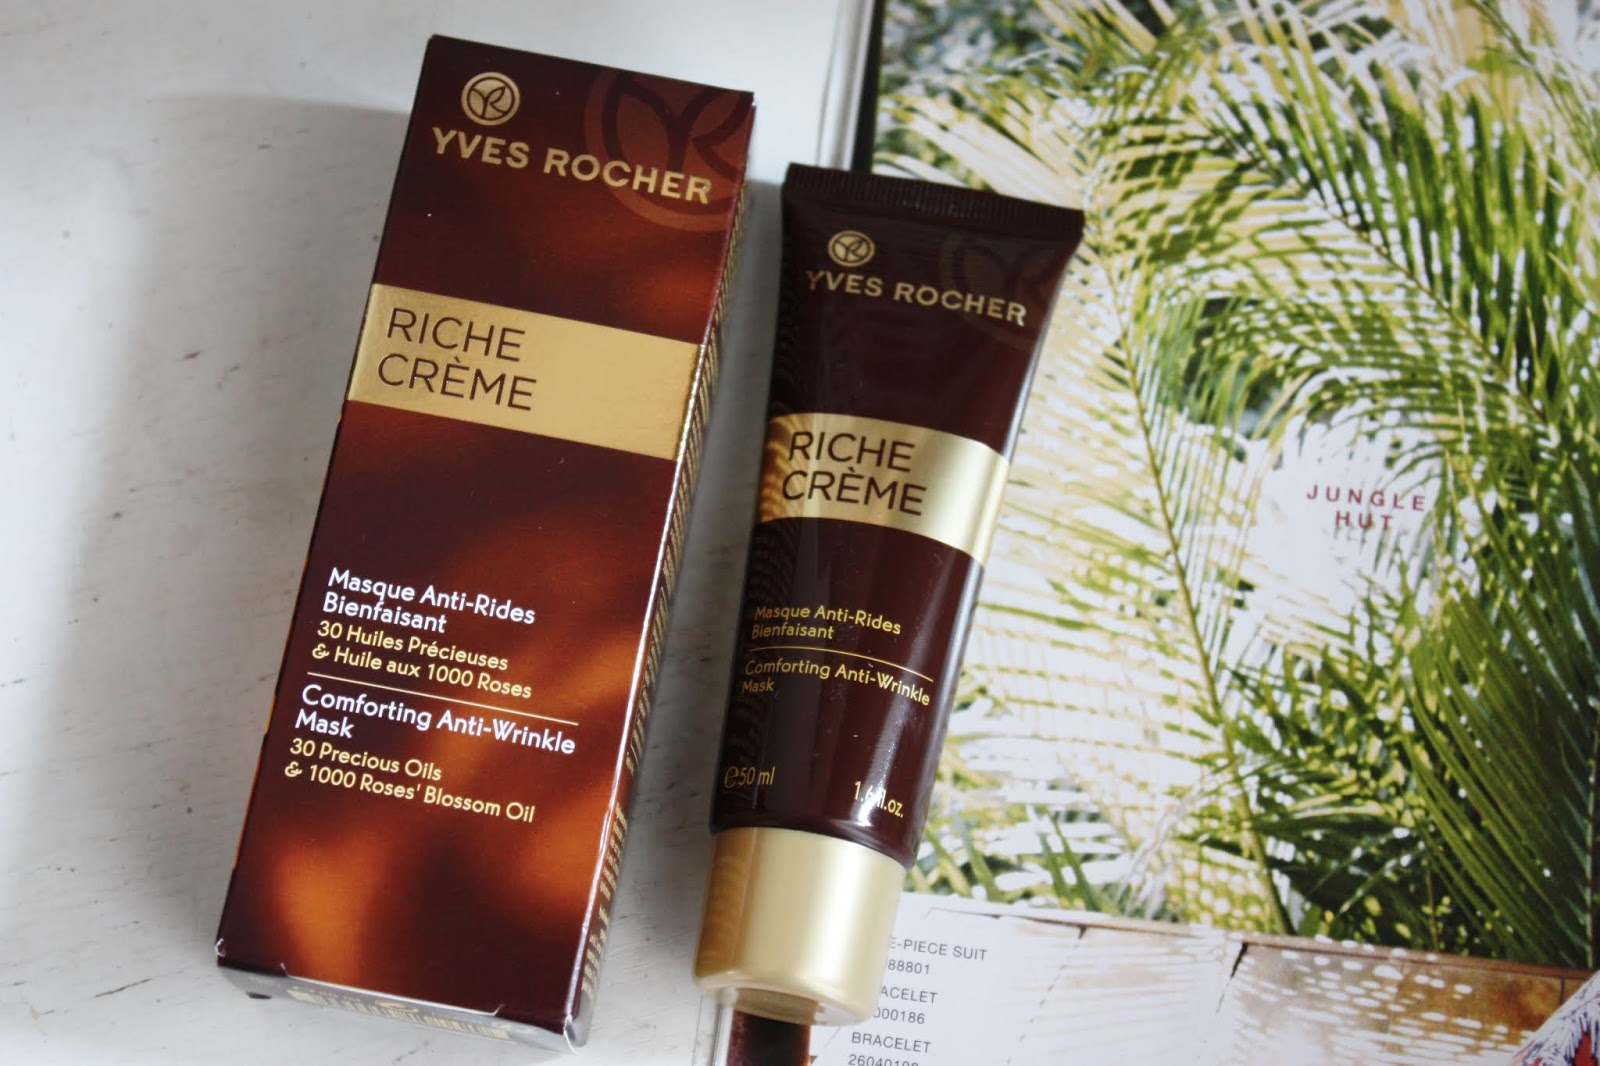 Yves Rocher - Riche creme - Comforting Anti-Wrinkle mask..